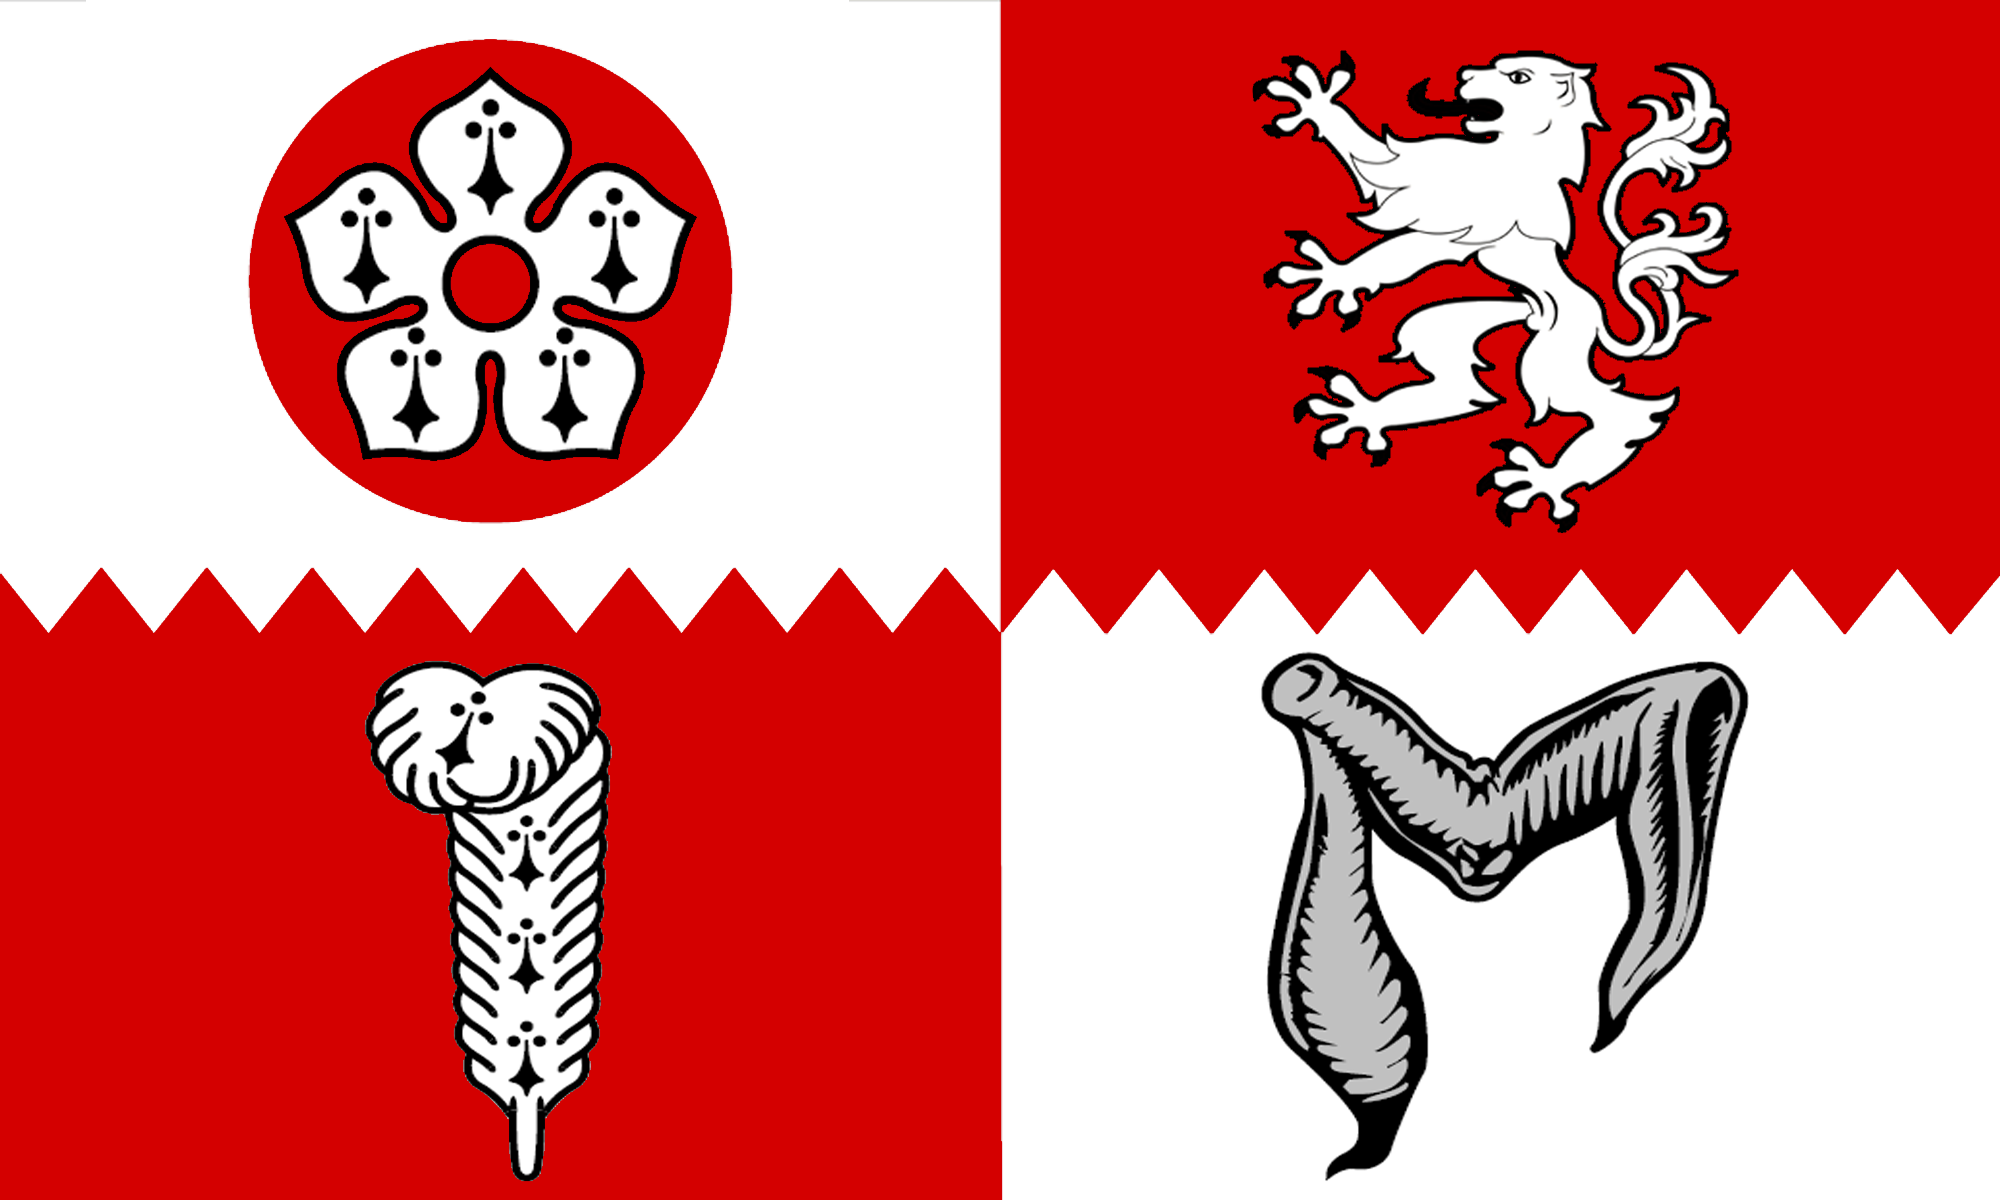 County_Flag_of_Leicestershire.png&f=1